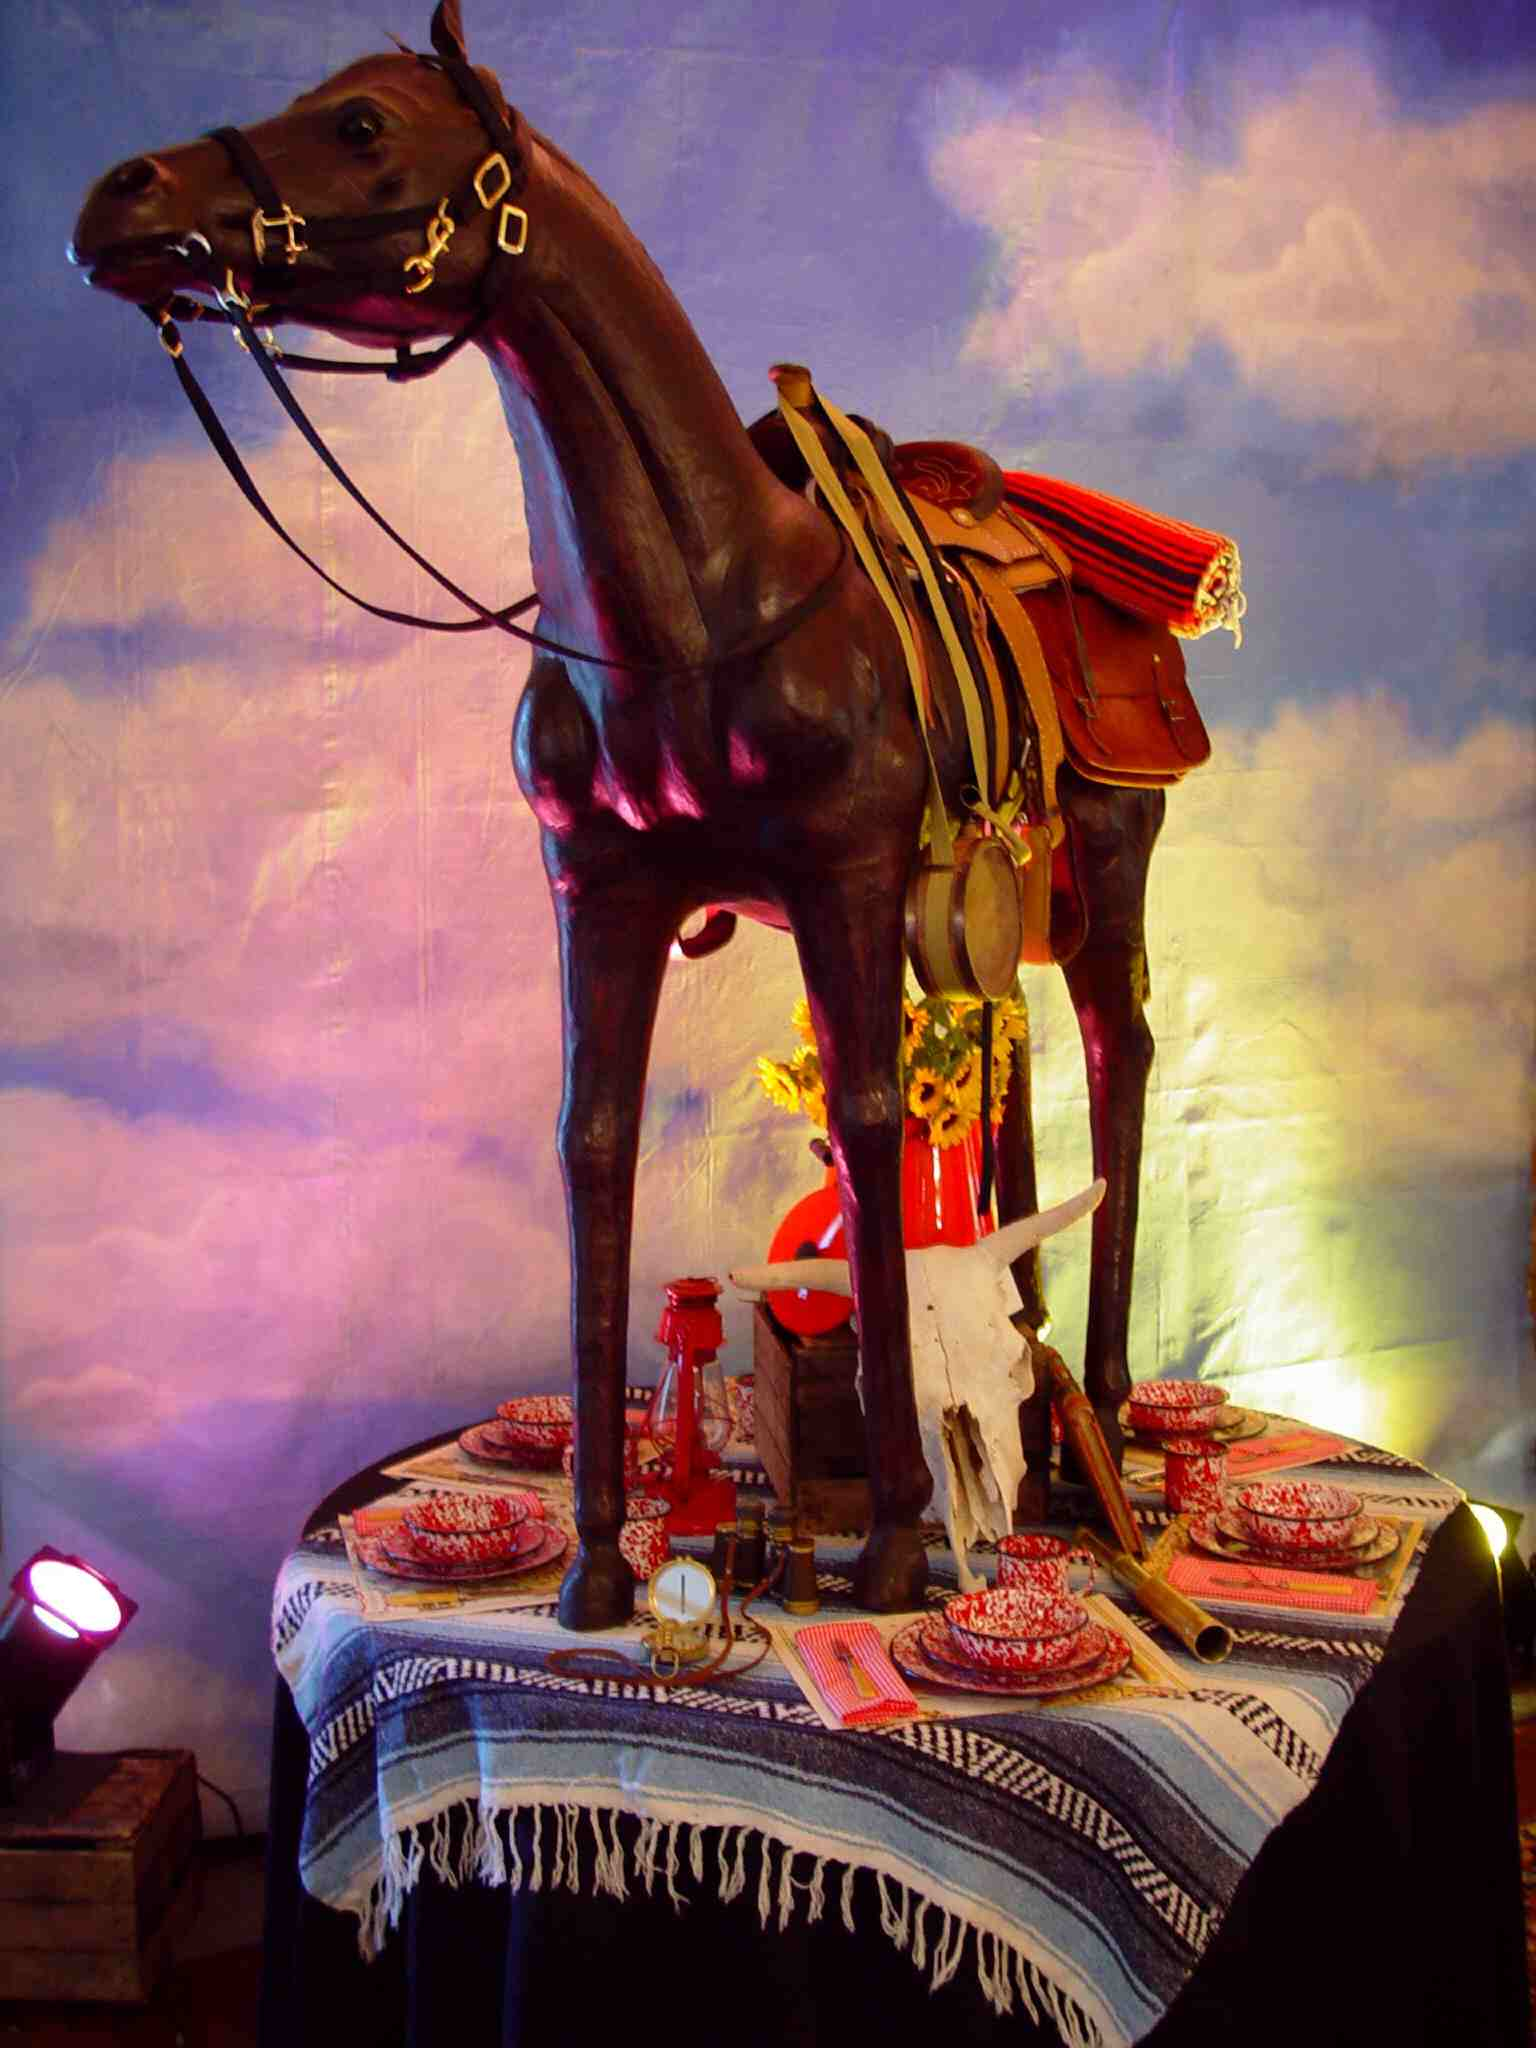 rustic+prop+rental+ho+down+western+themed+party+decor+eggsotic+events.jpg